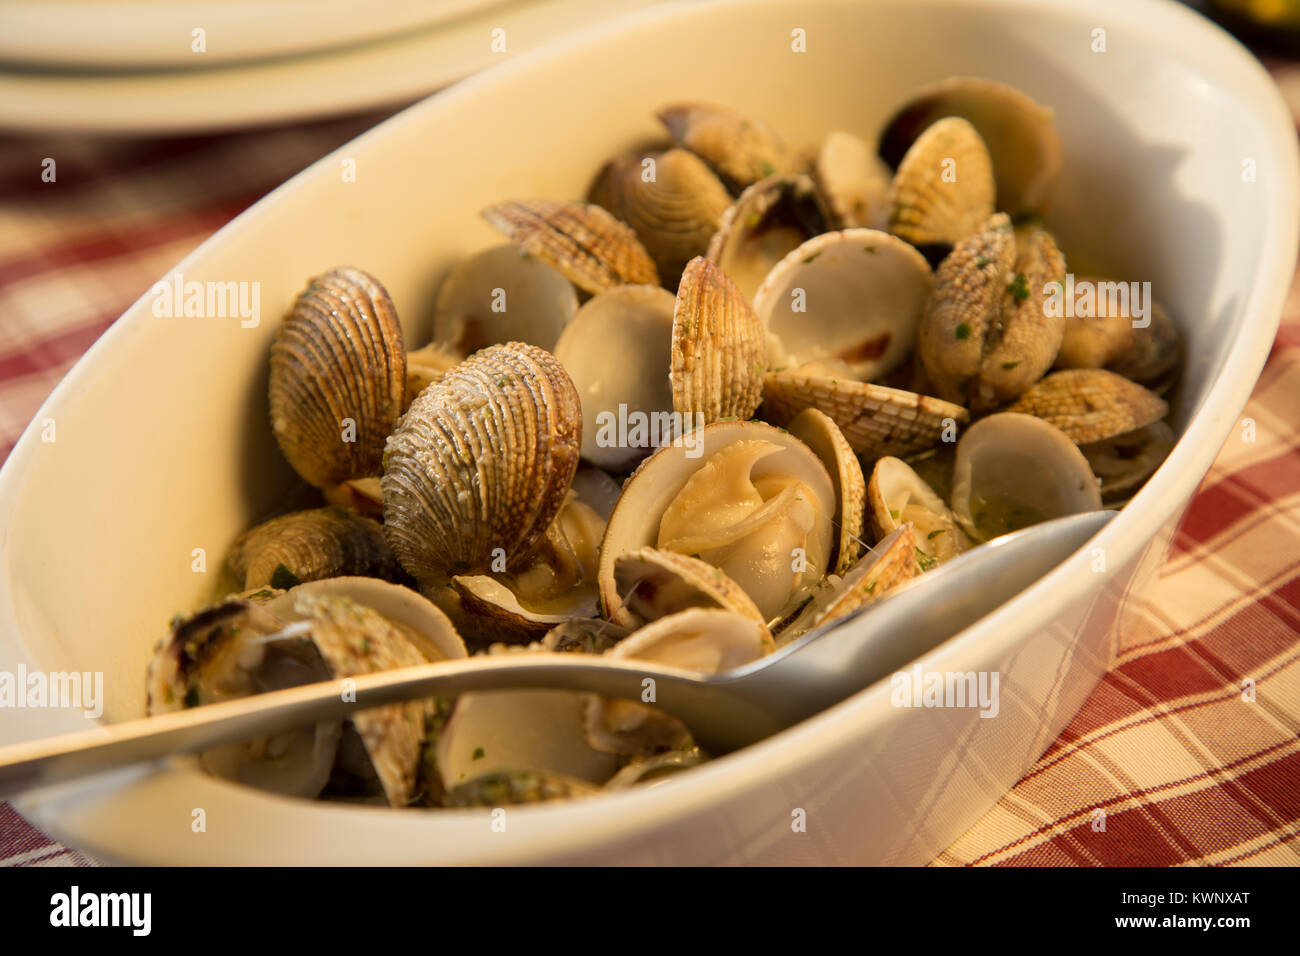 Clams served in restaurant in Croatia - Stock Image